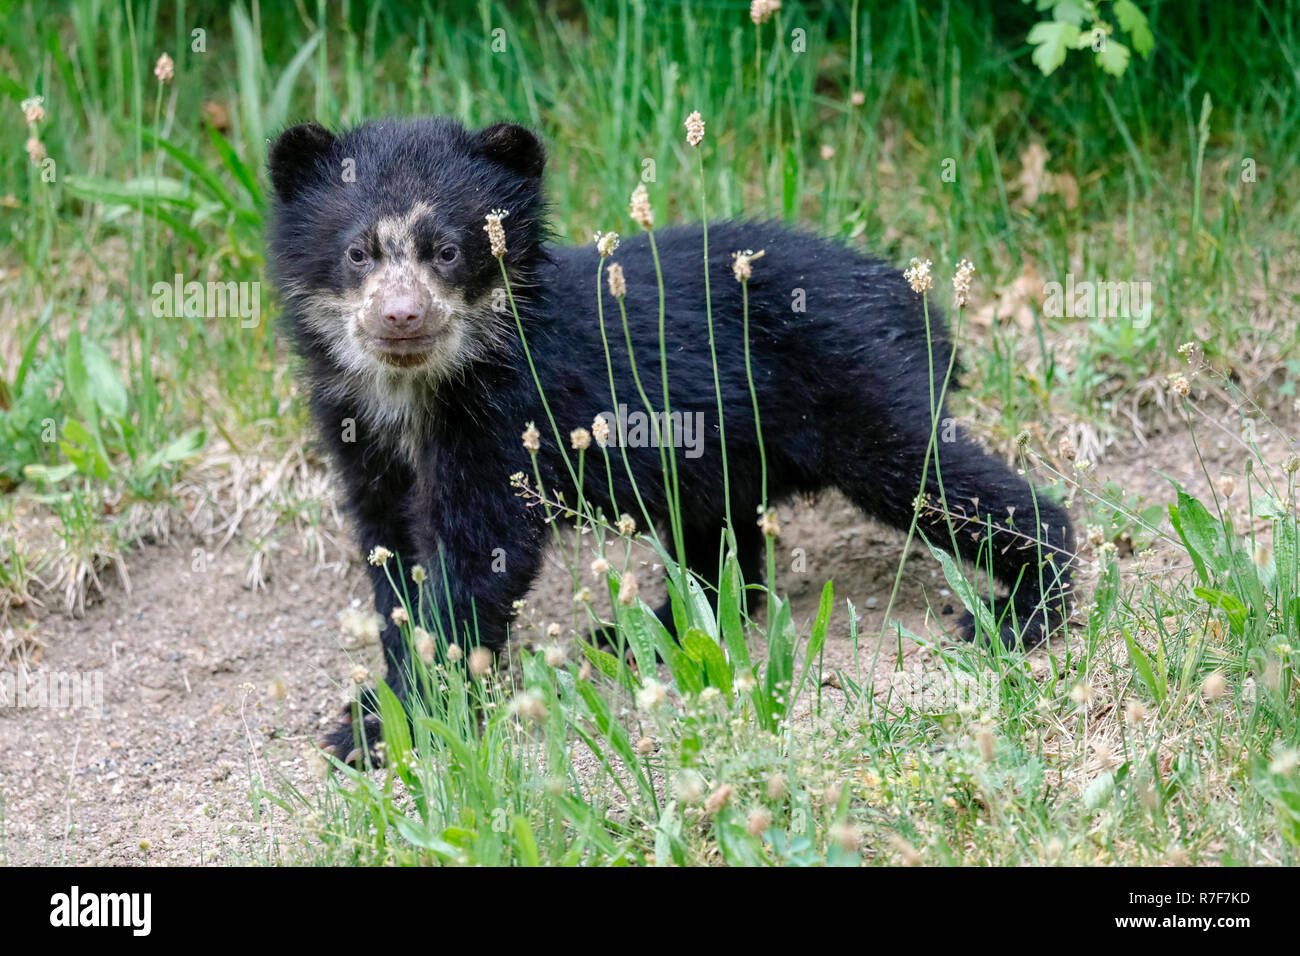 Spectacled bear, Andean bear (Tremarctos ornatus) young animal climbing, captive Stock Photo